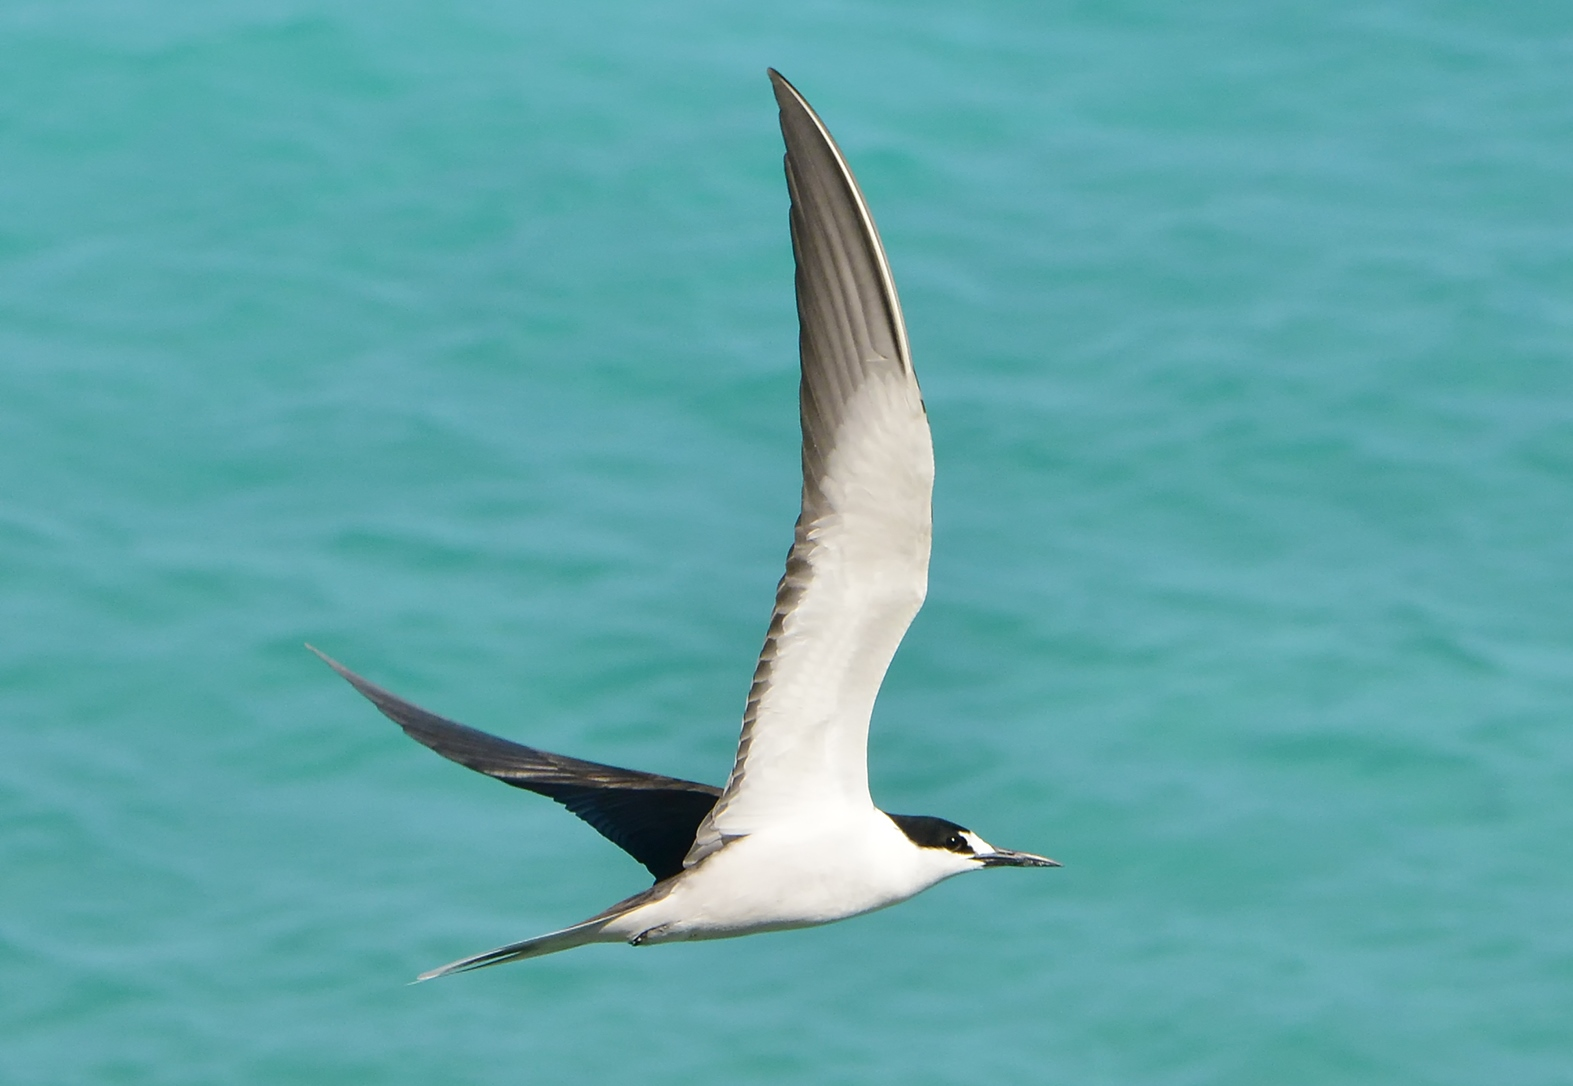 Sooty Tern (Onychoprion fuscatus). Both the Sooty Tern and and very similar Bridled Tern (O. anaethetus) are common Caribbean pelagic seabirds. Photograph by Ted Lee Eubanks.